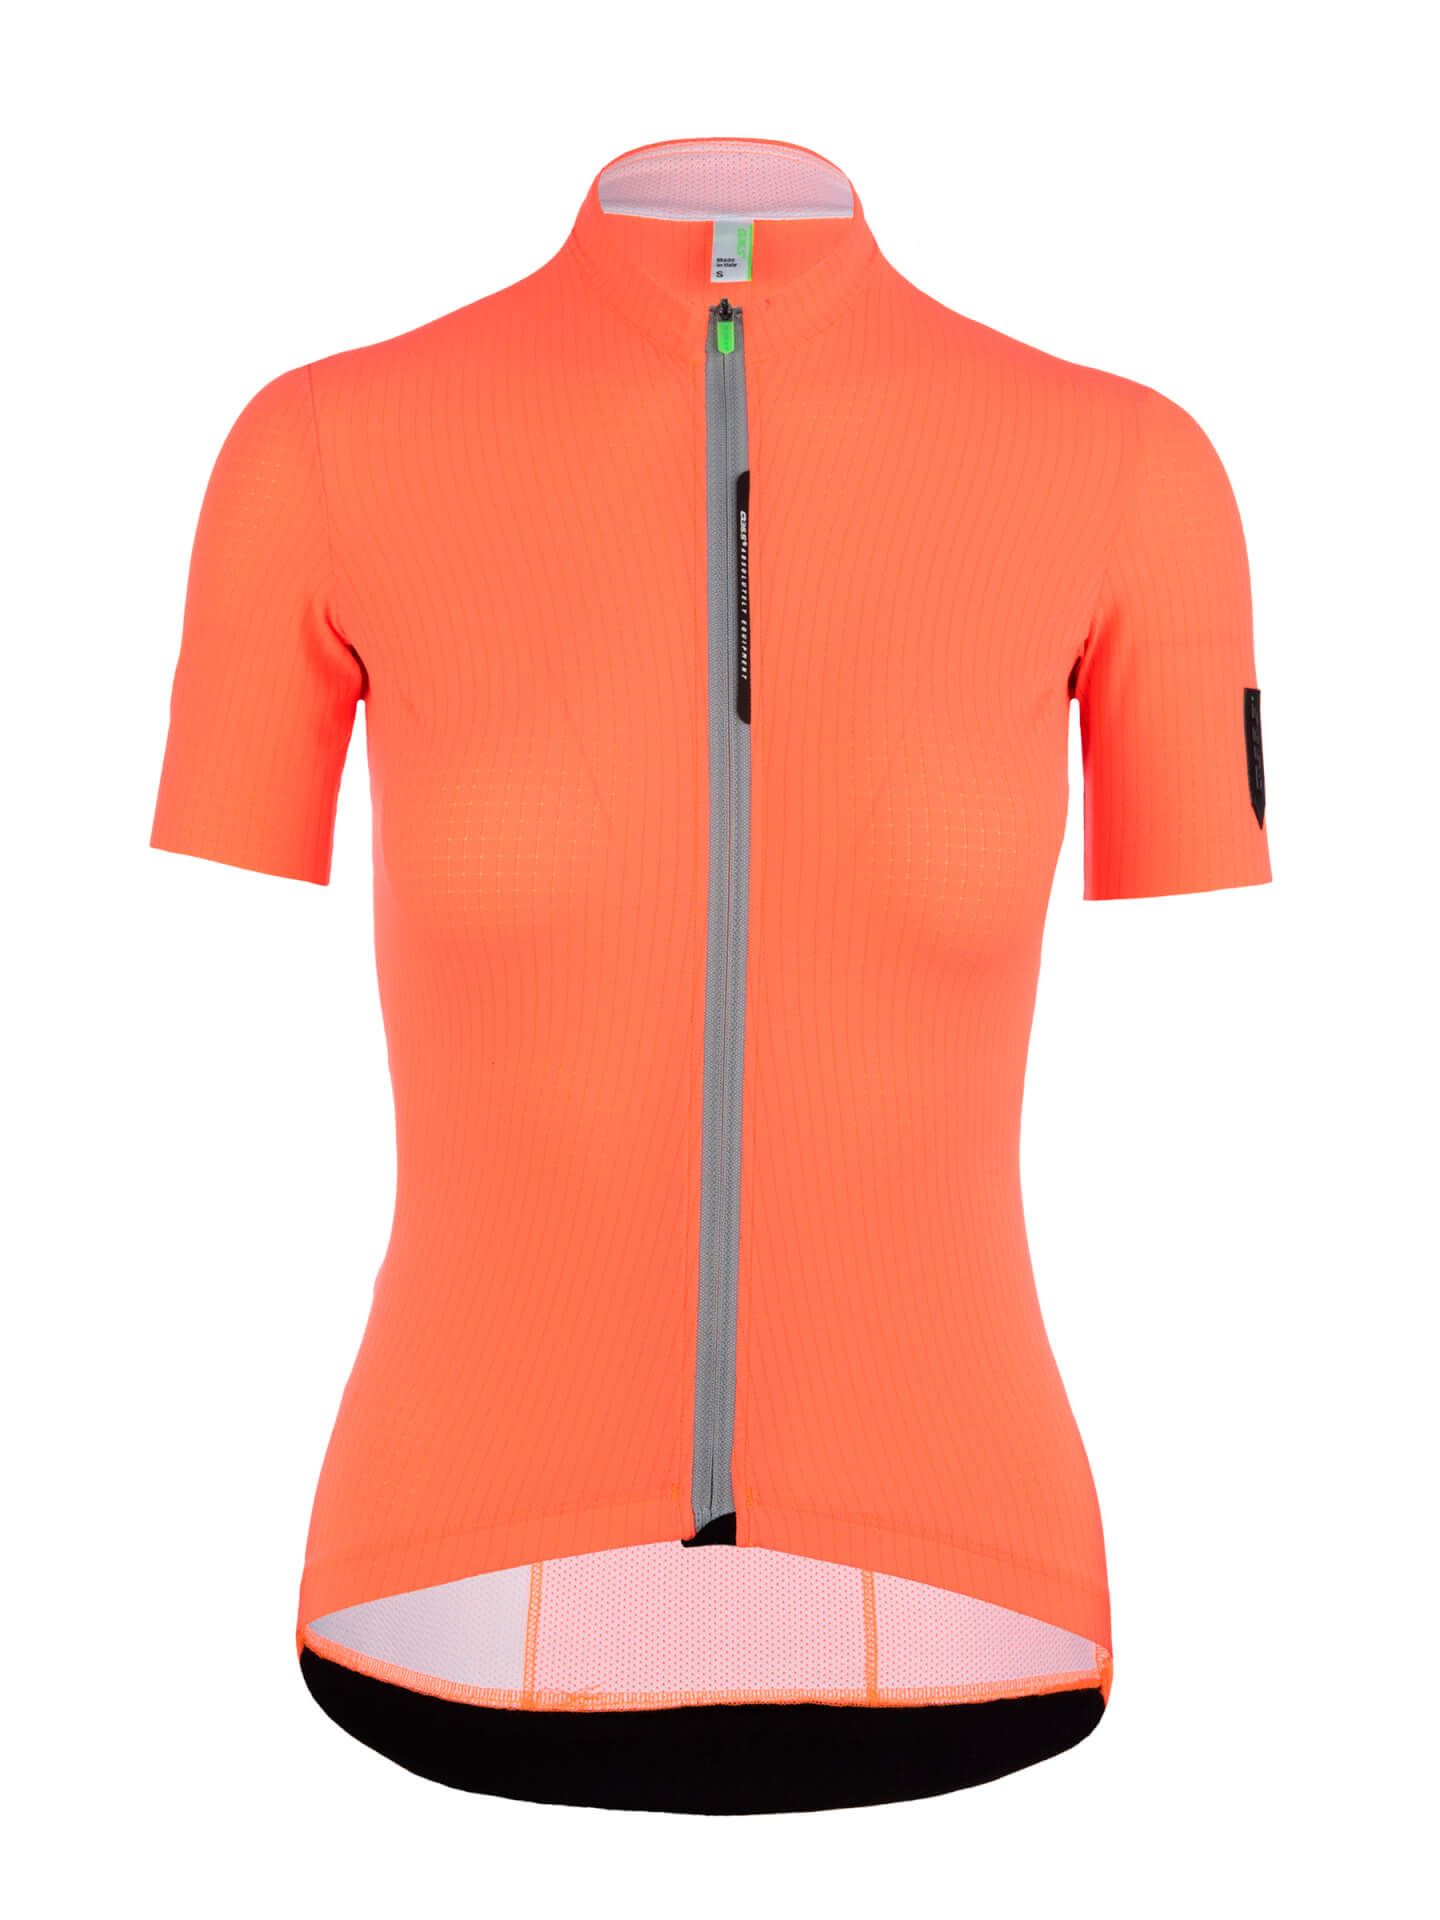 Womens cycling jersey short sleeve L1 Woman Pinstripe X coral Q36.5